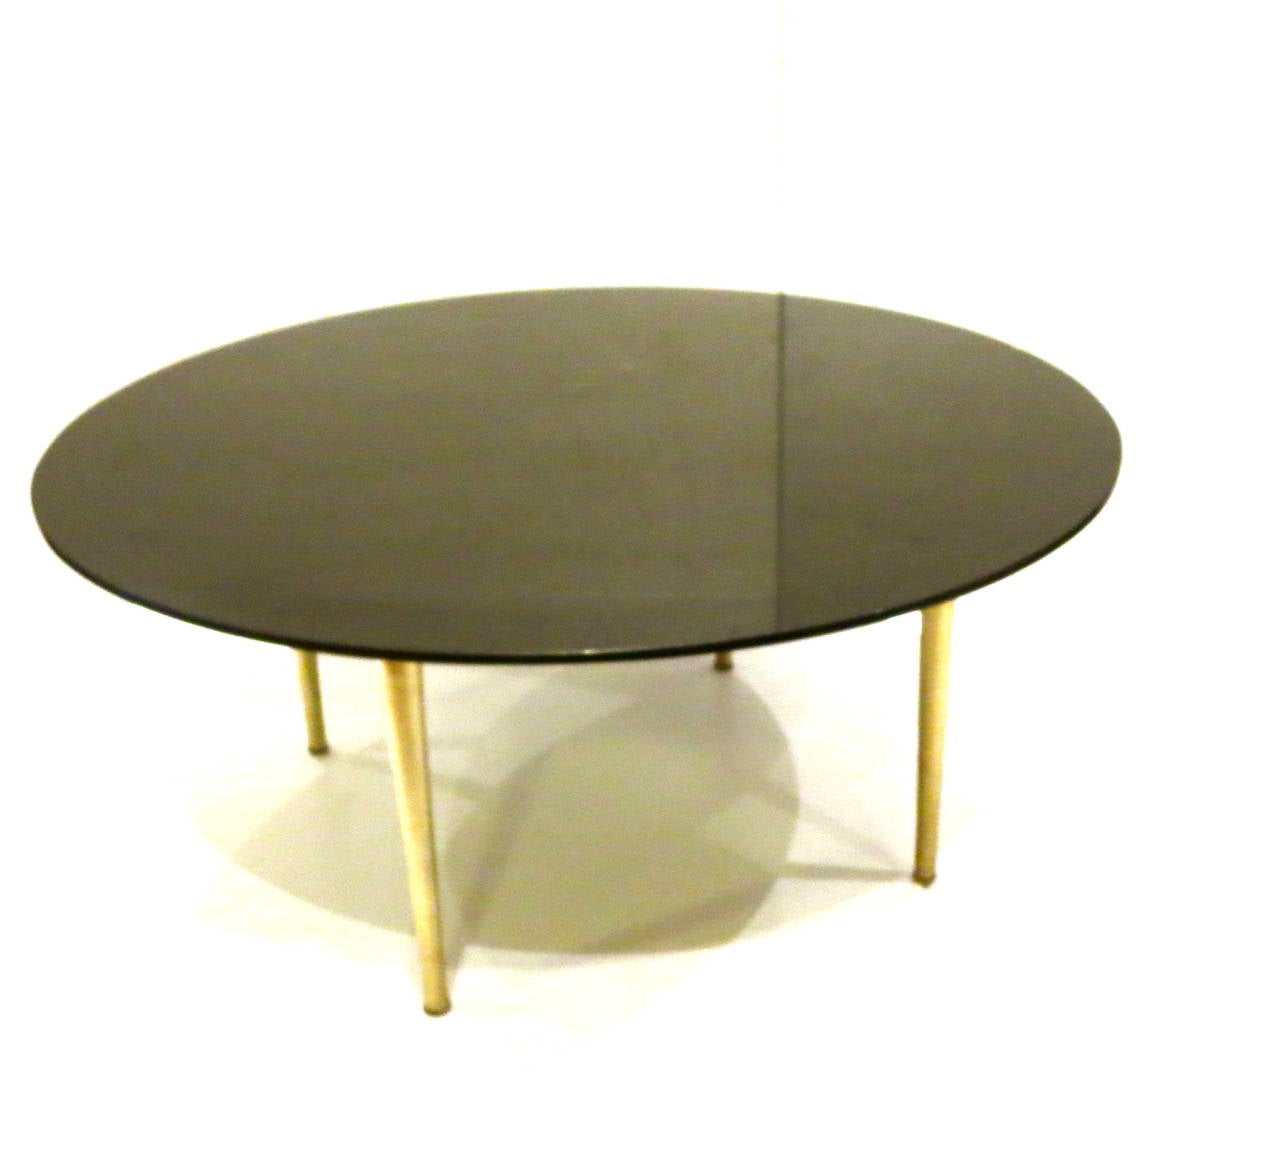 Brushed Aluminum Coffee Table: American Modern Polished Black Granite Coffee Table With